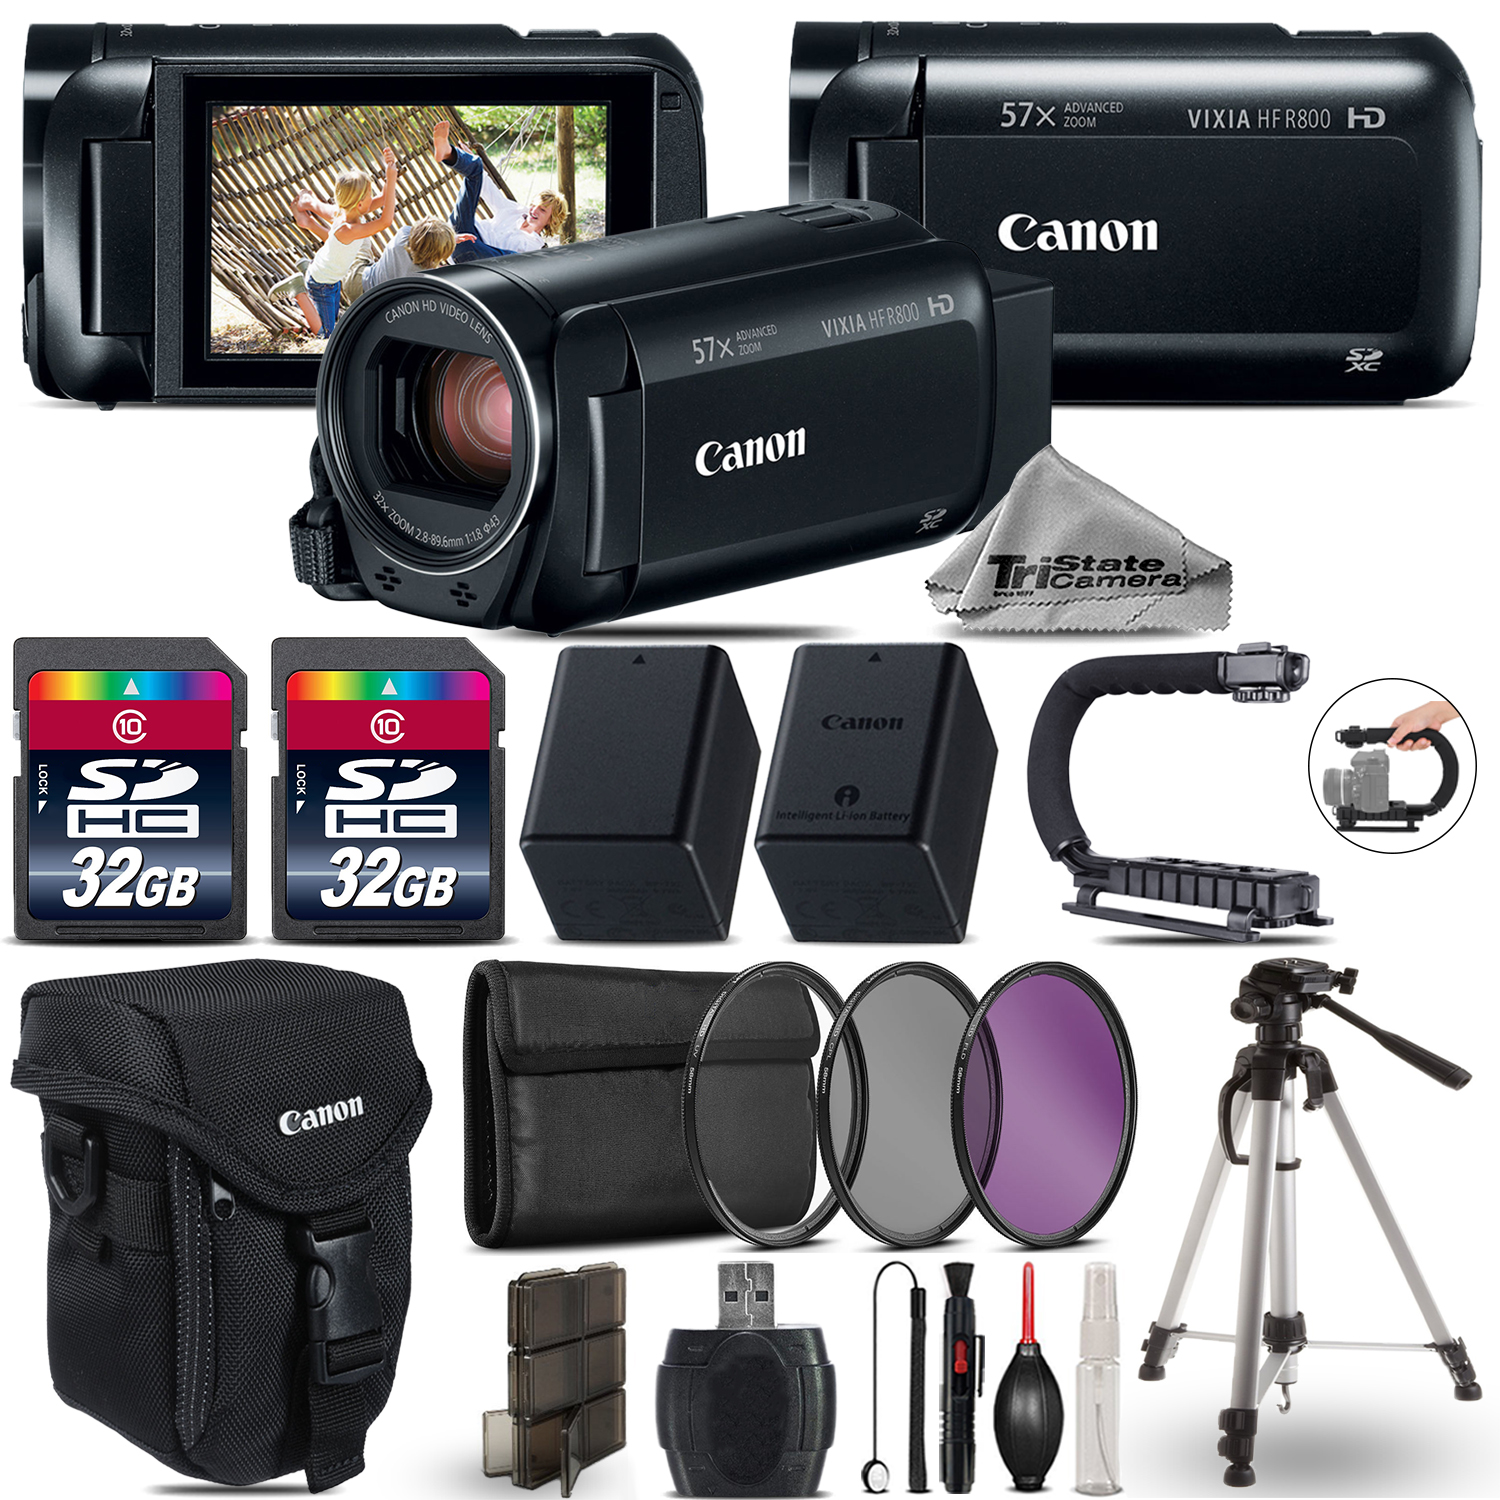 VIXIA HF R 800 HFR 800 Camcorder Black + 64GB - Essential Ultimate Bundle *FREE SHIPPING*